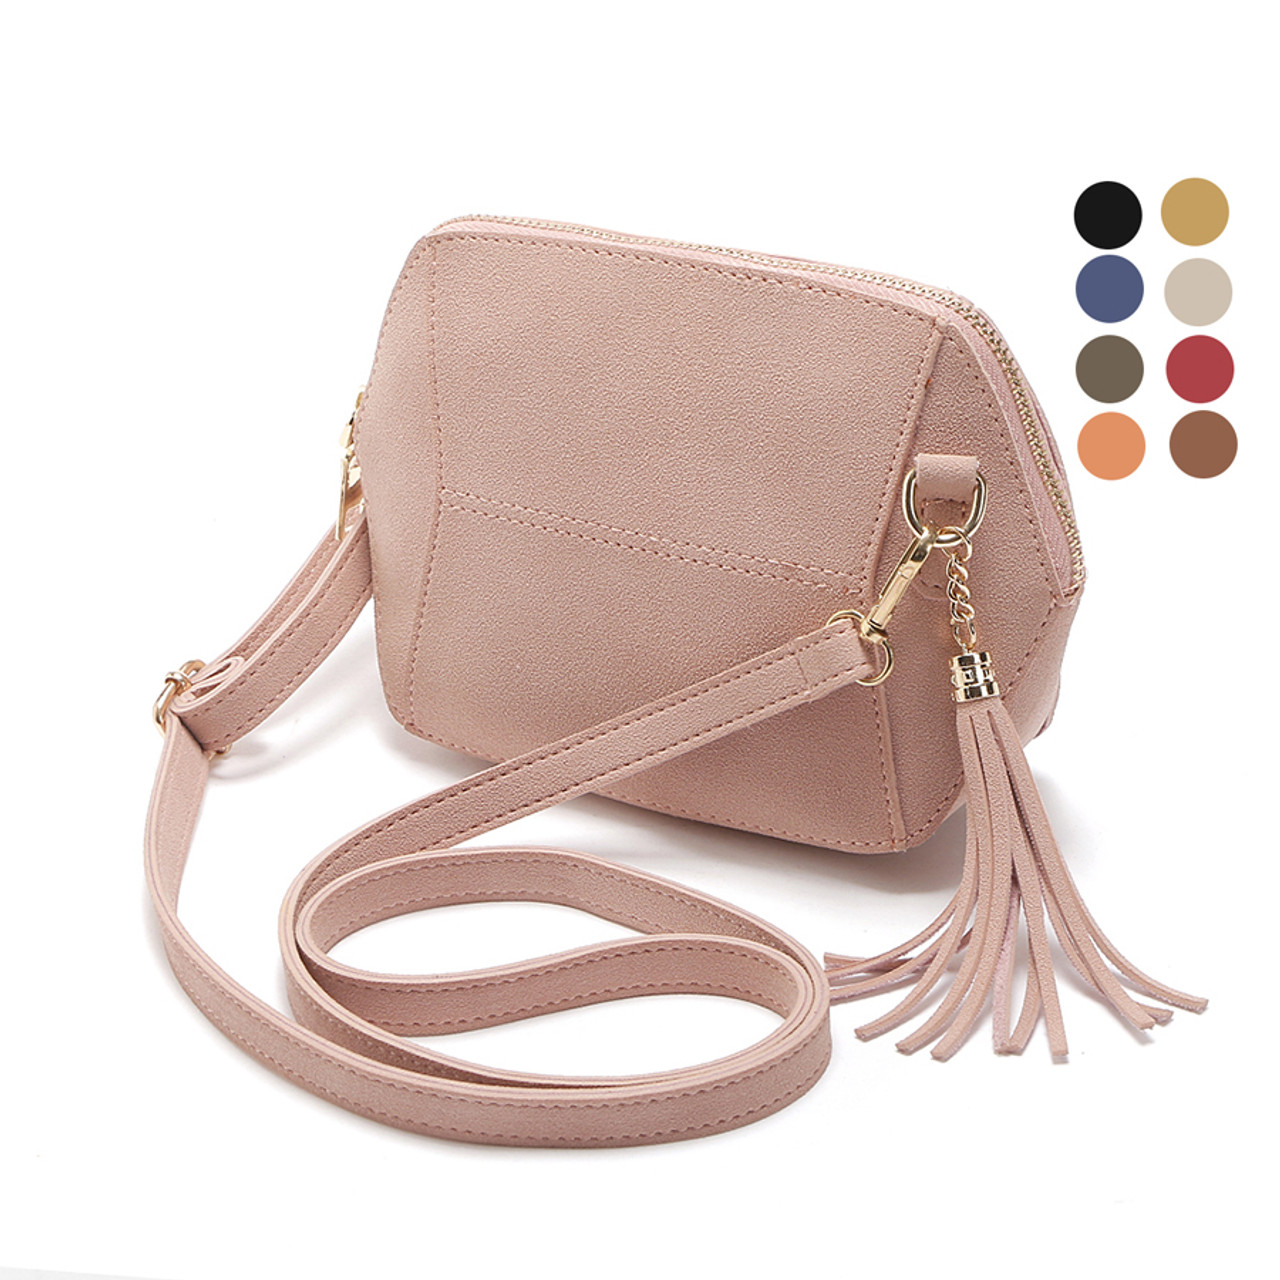 Fringe Crossbody Bag Women Suede Clutch Bag Girl Fashion Messenger Shoulder  Handbags Ladies Beach Holiday Tassel Bags 10 colors - OnshopDeals.Com 484af7fce9